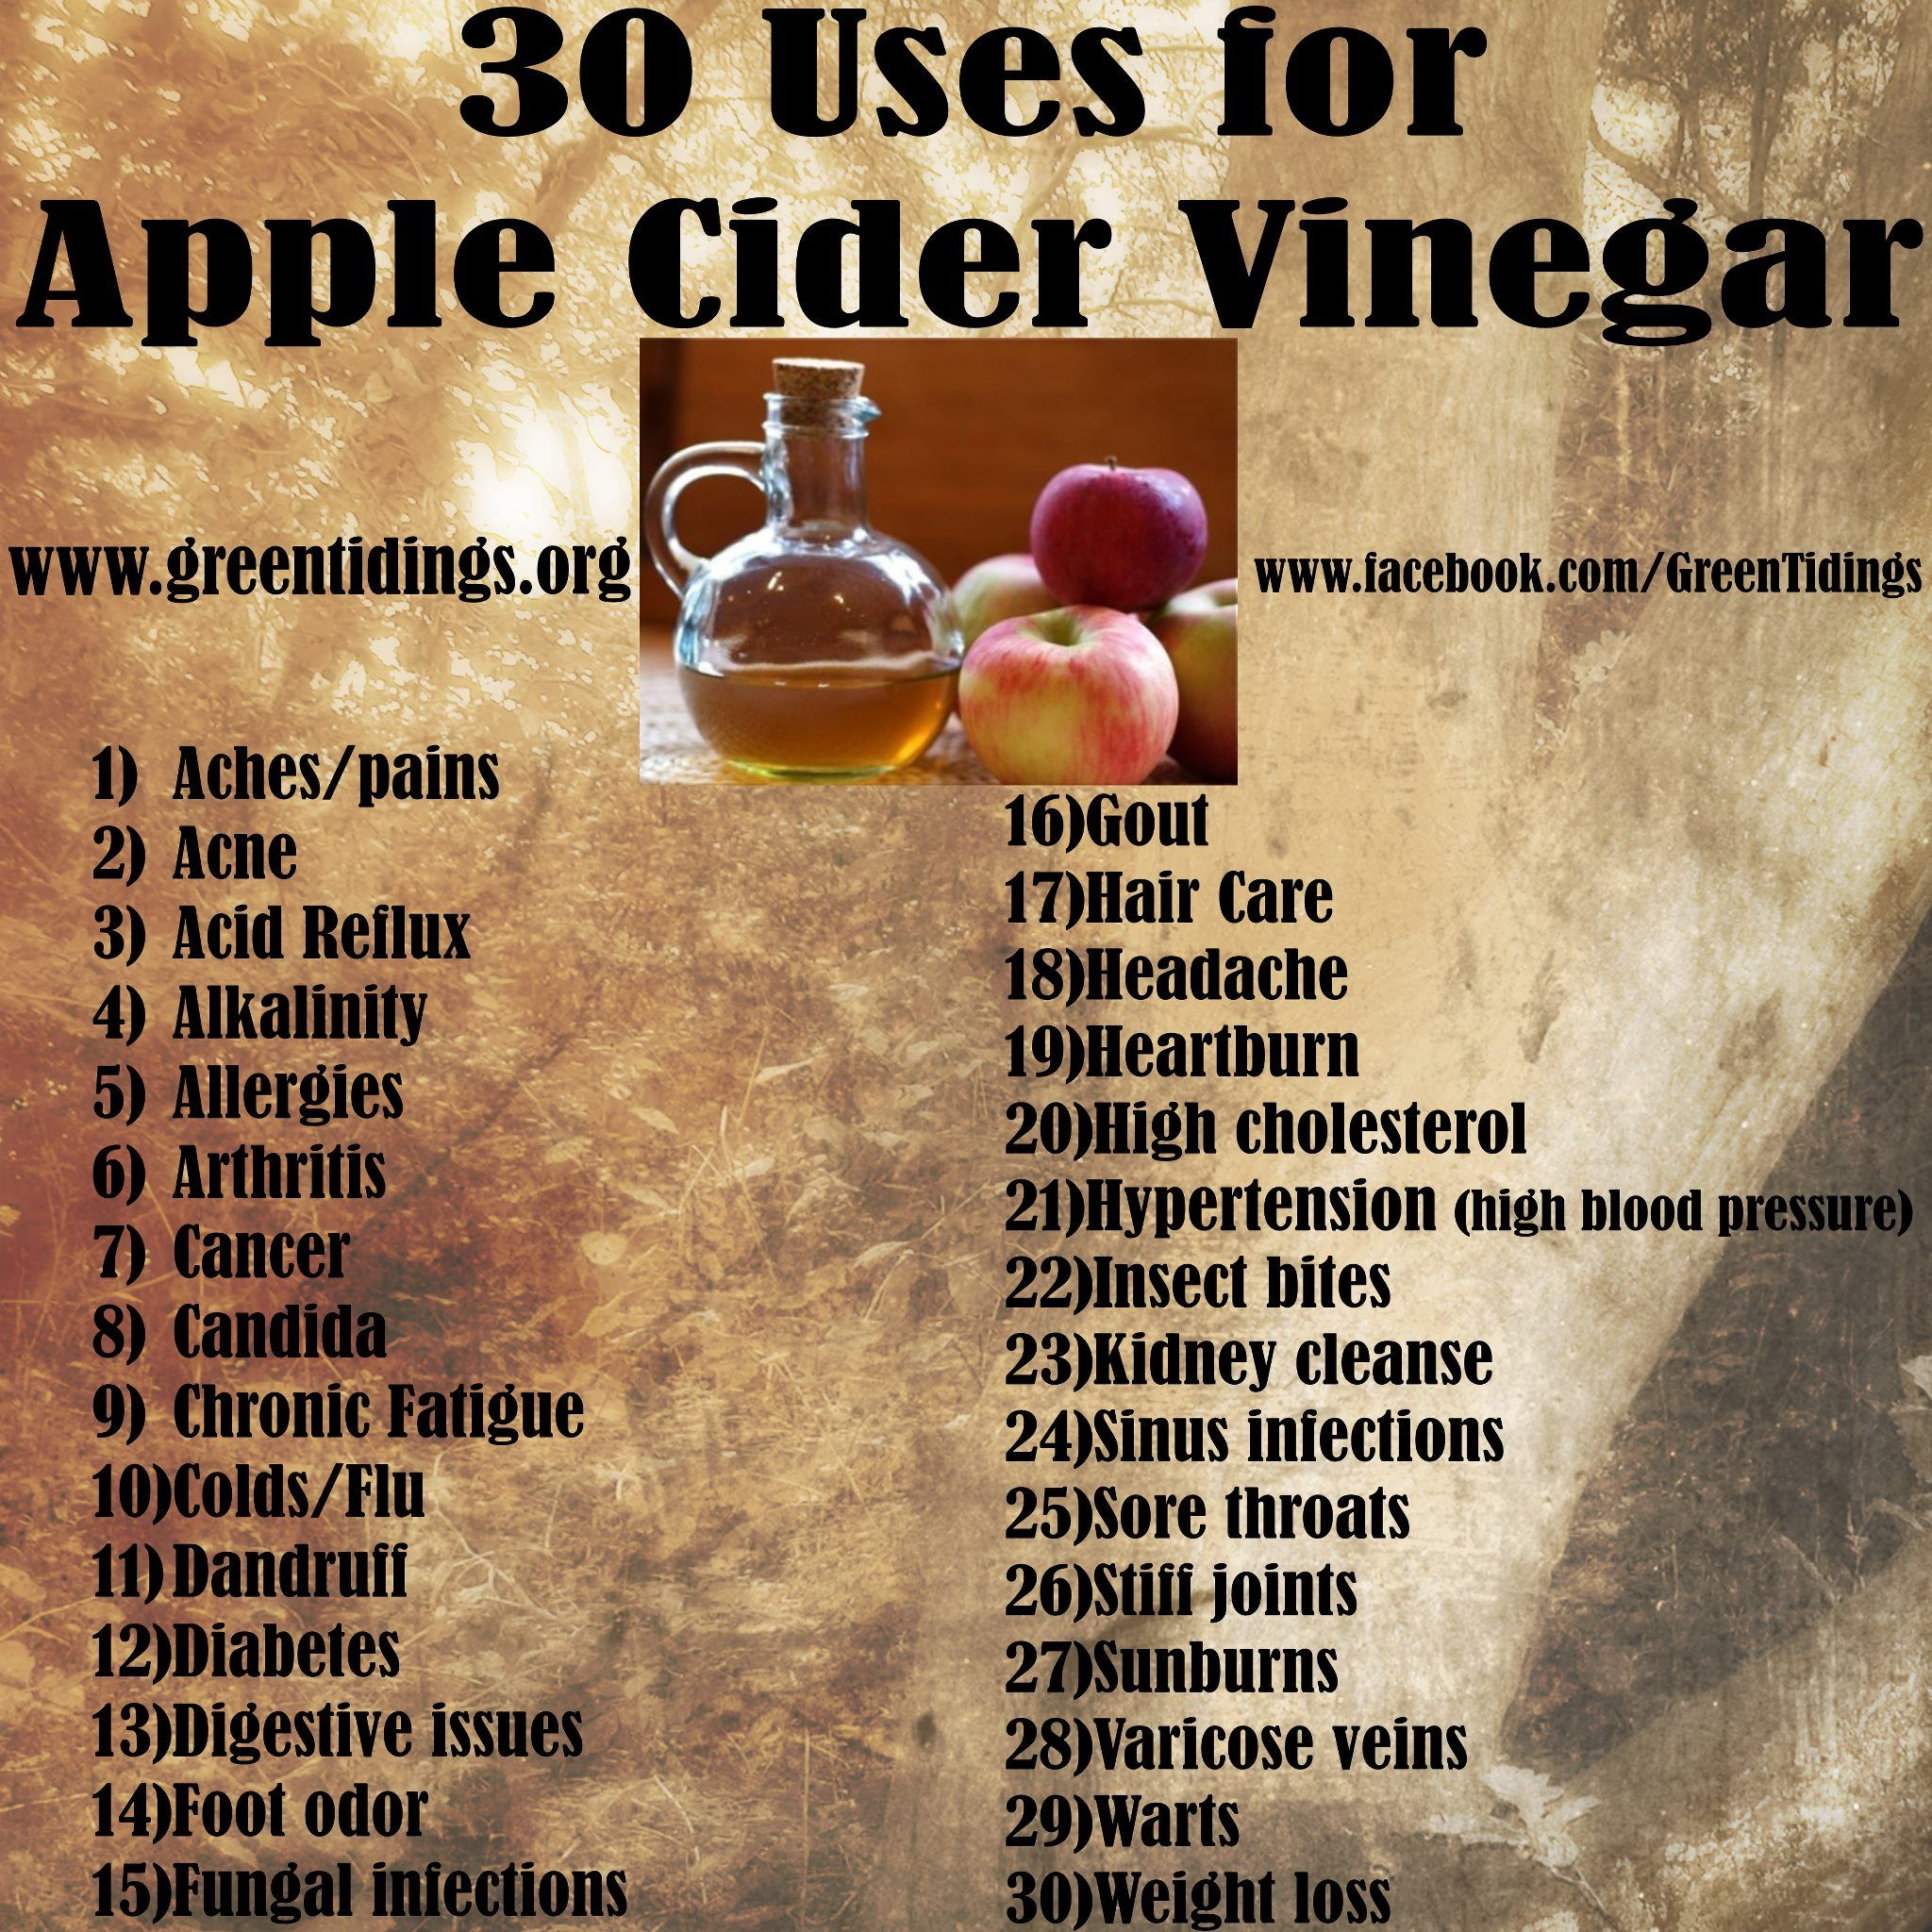 Starting My Day Liver Cleanse Tomorrow Tbsp Of Cider Oz - Secret benefits drinking apple juice